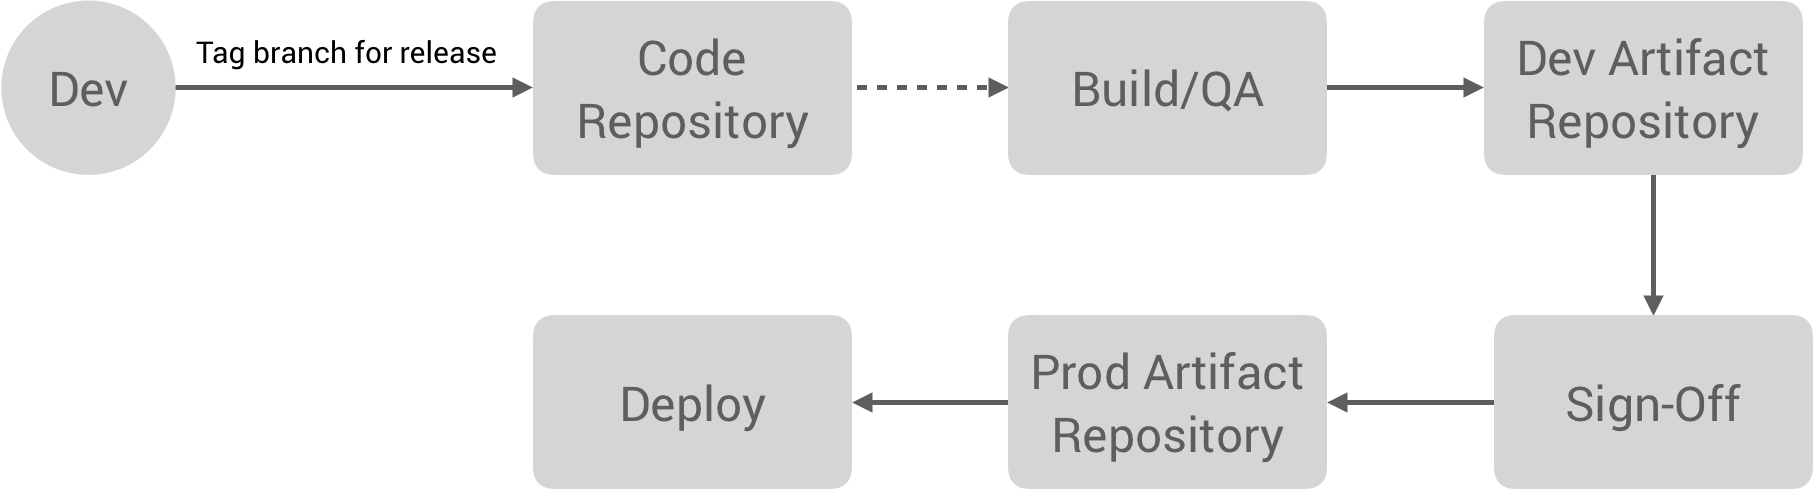 Scaling Devops And The Revival Of Operations Brave New Geek Exploded Engine Diagram Group Picture Image By Tag Developer Tags A Branch For Release Which Triggers Build Process Creating Artifact This May Have Qa Then Promotes